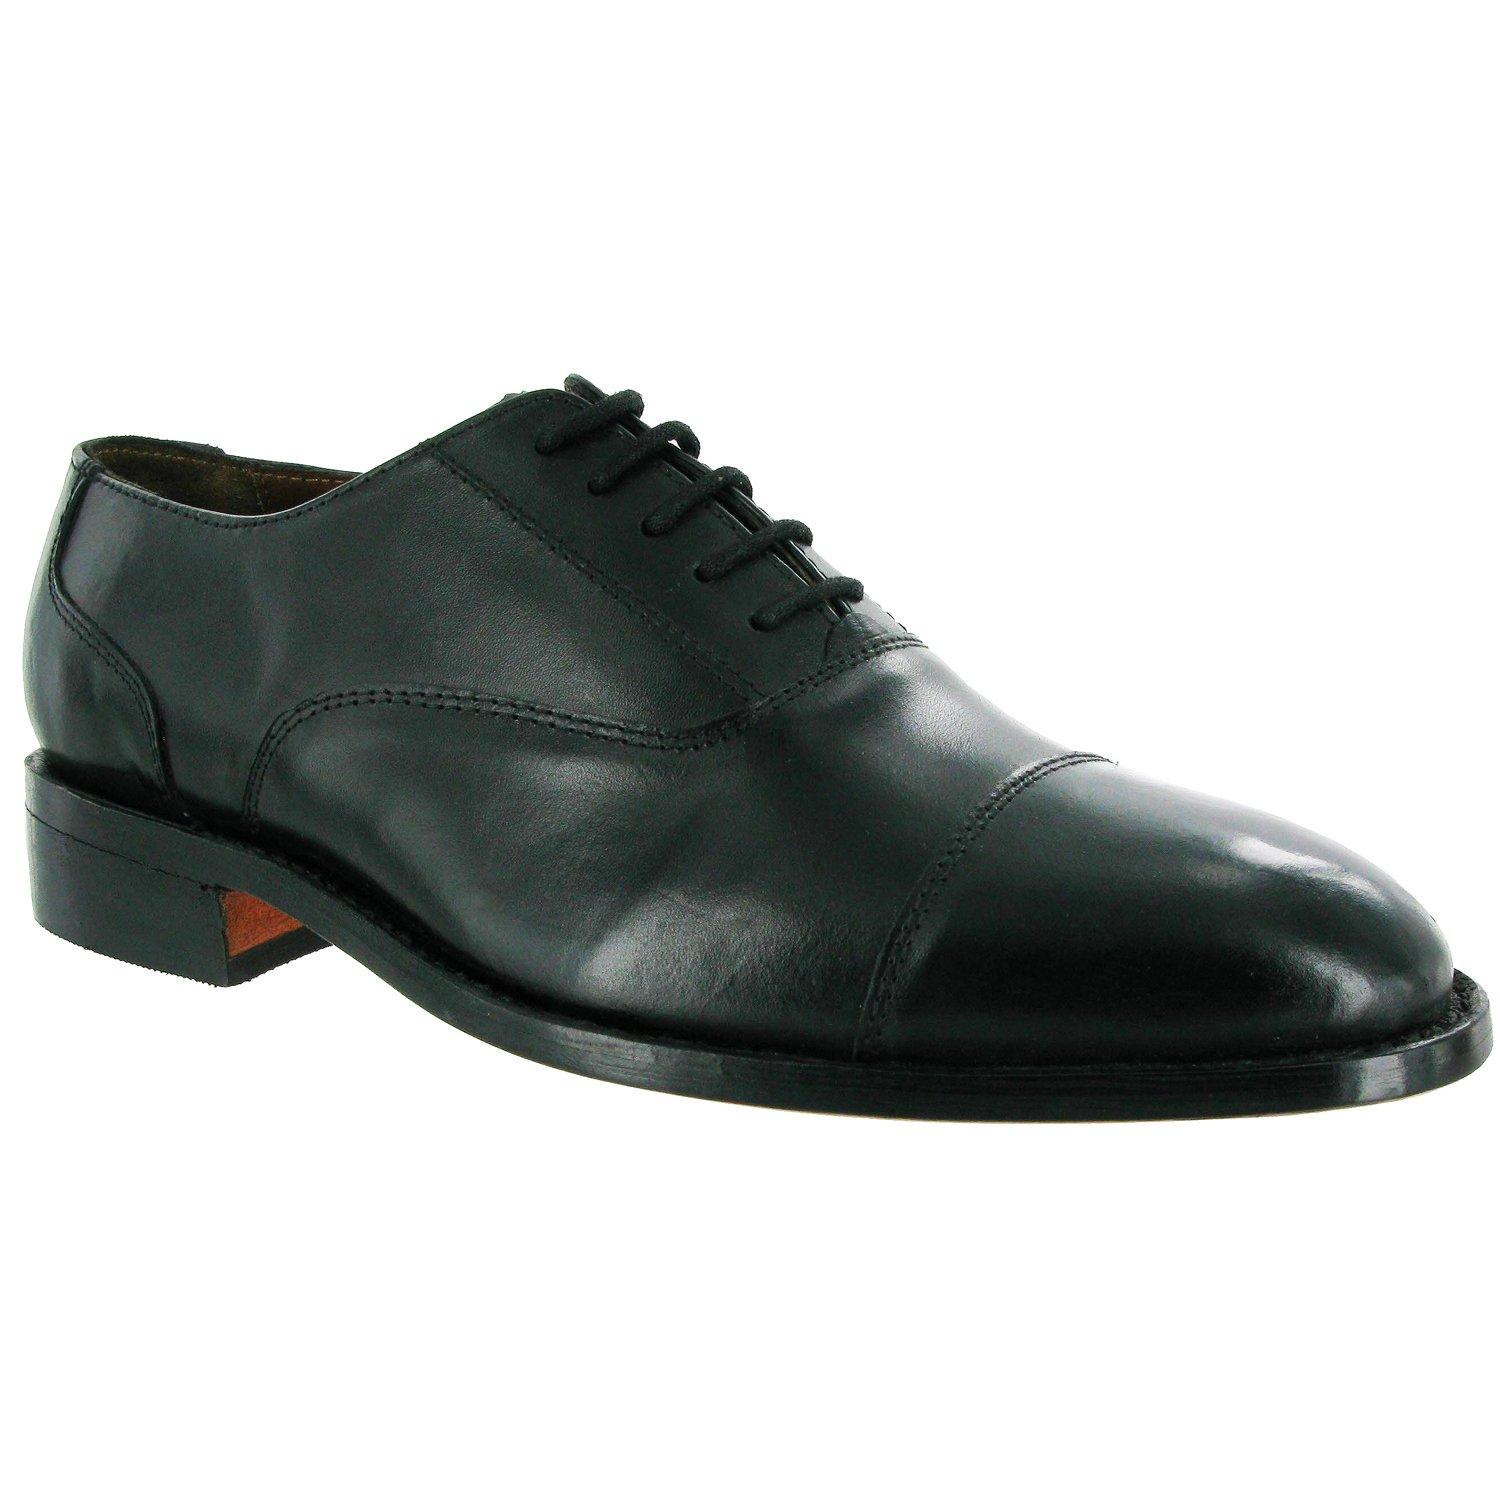 Amblers James Leather Soled Shoe / Mens Shoes (8.5 US) (Black)